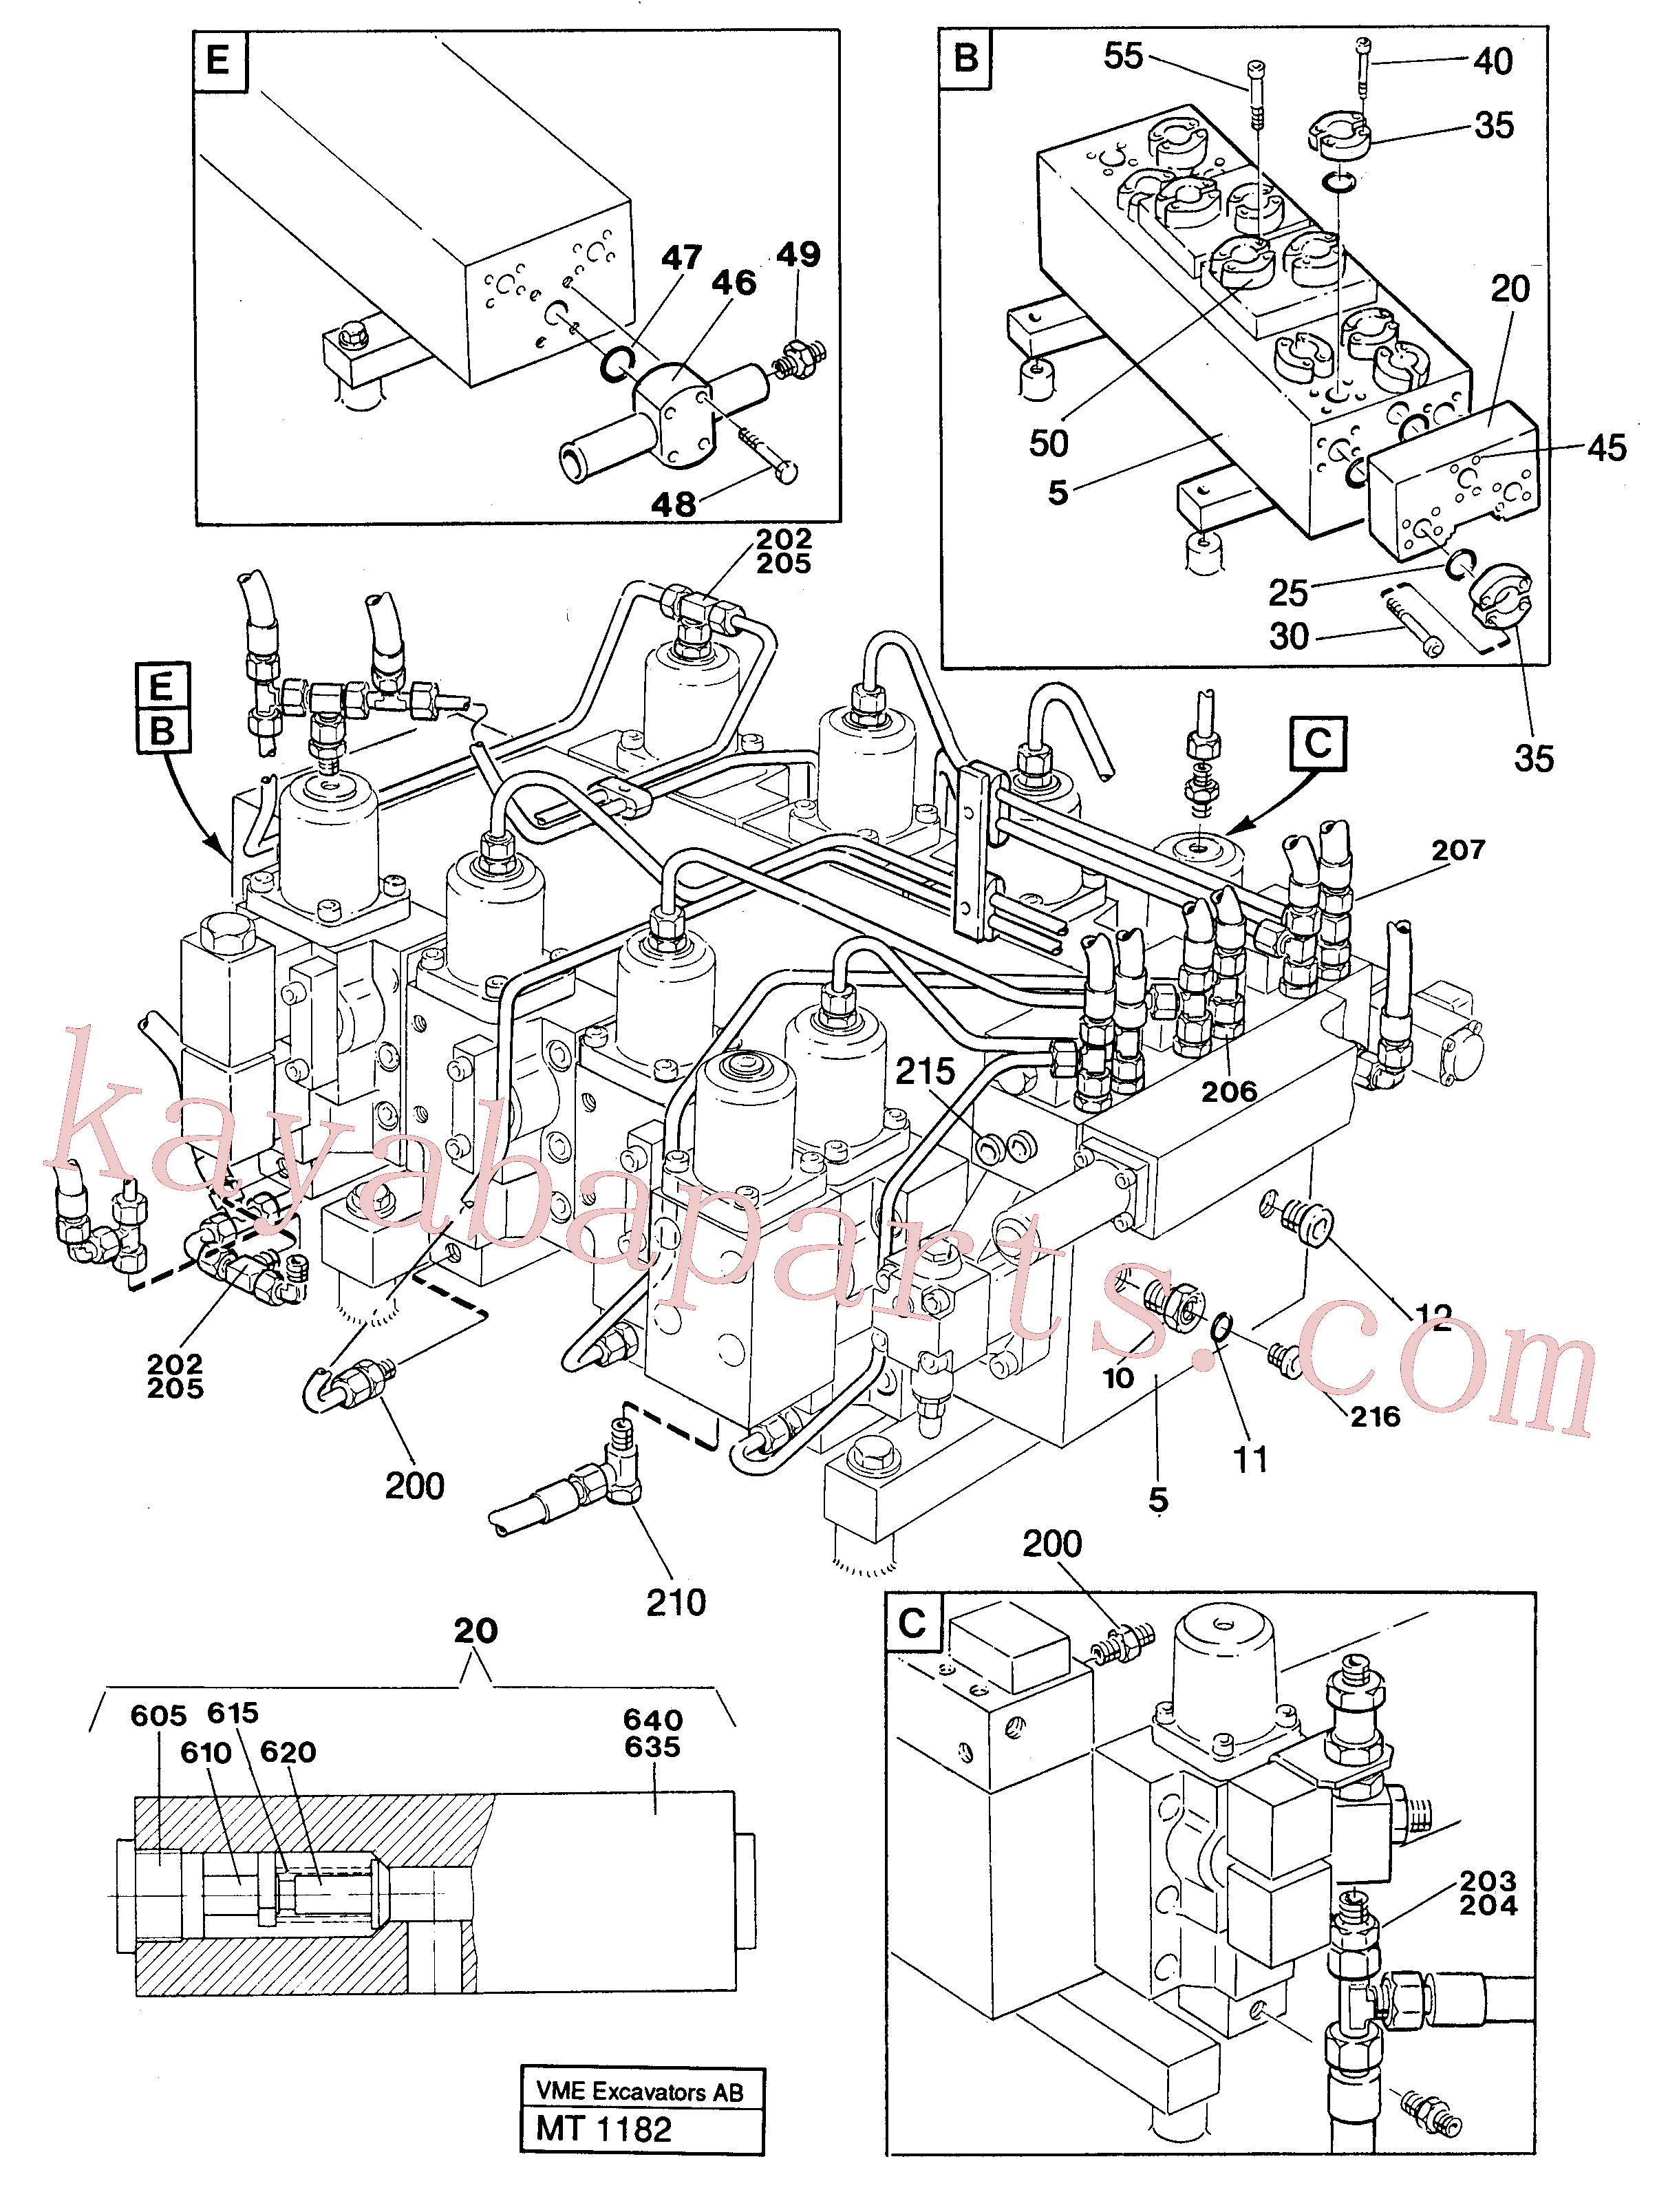 VOE14241311 for Volvo Main valve assembly with connections(MT1182 assembly)